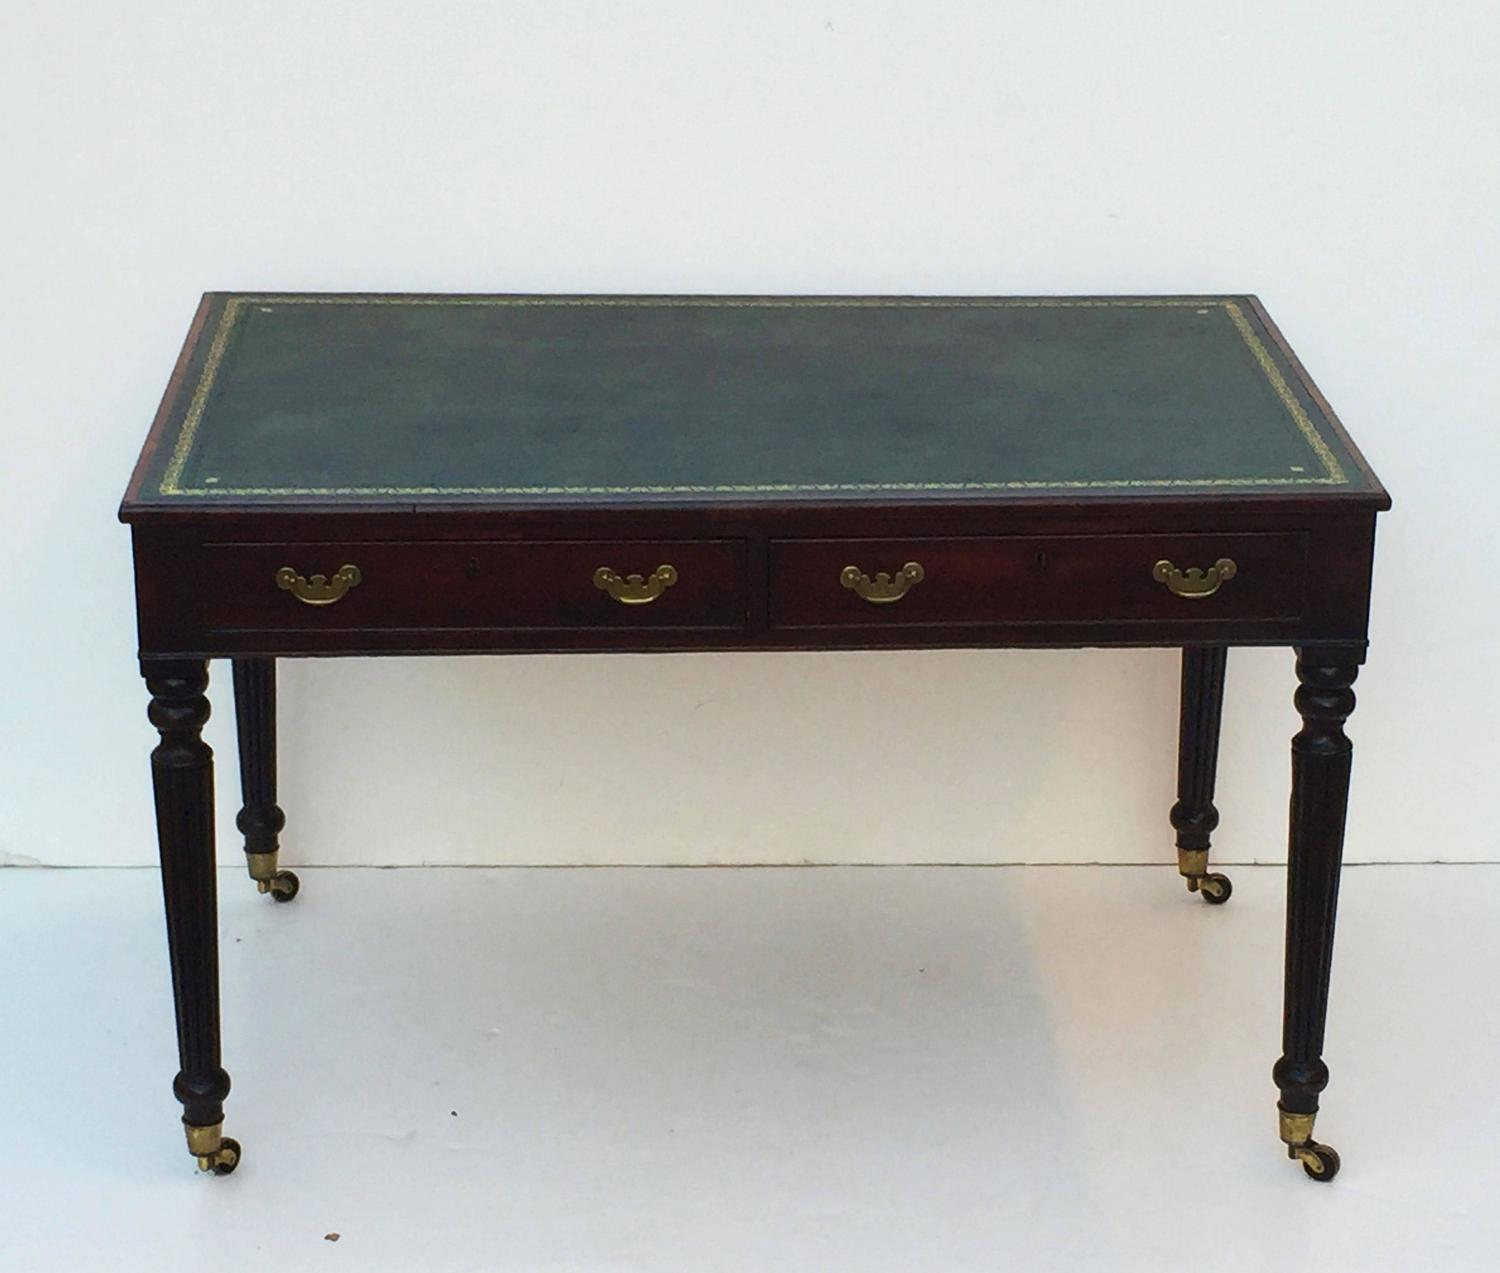 #5C4E38 Large English Partner's Writing Table Or Desk At 1stdibs with 1500x1273 px of Best Large Writing Table 12731500 image @ avoidforclosure.info